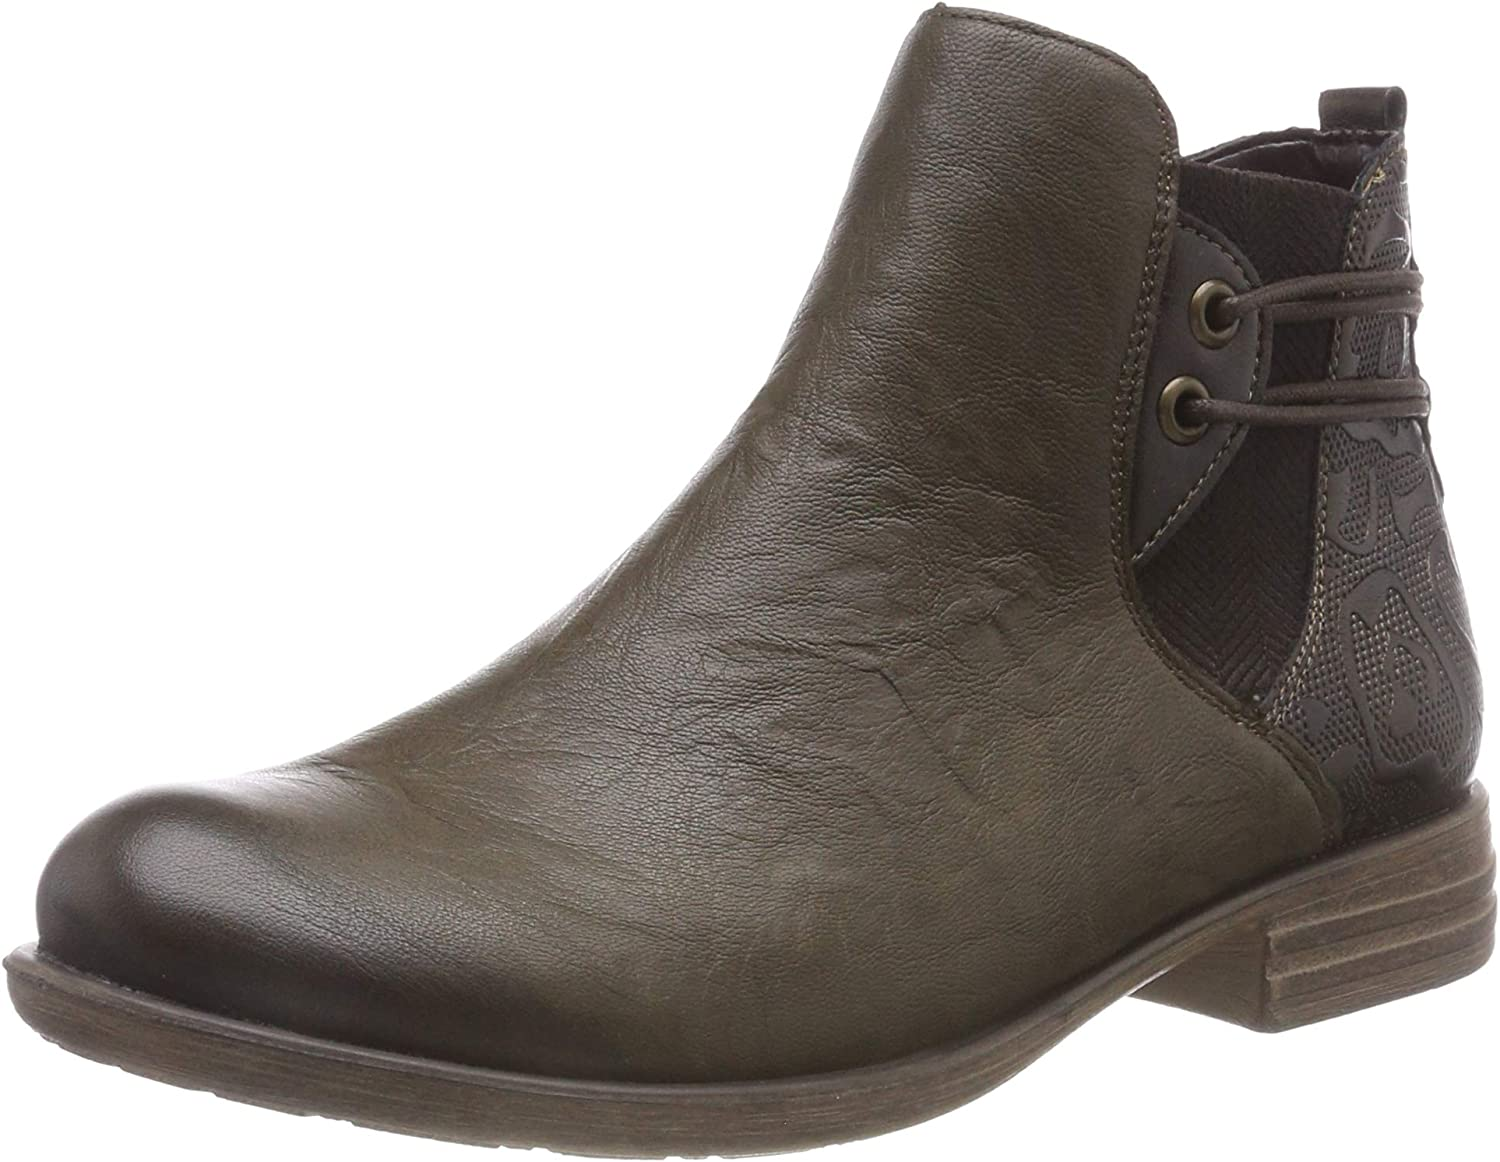 Remonte Women's, D4976 Ankle Boots